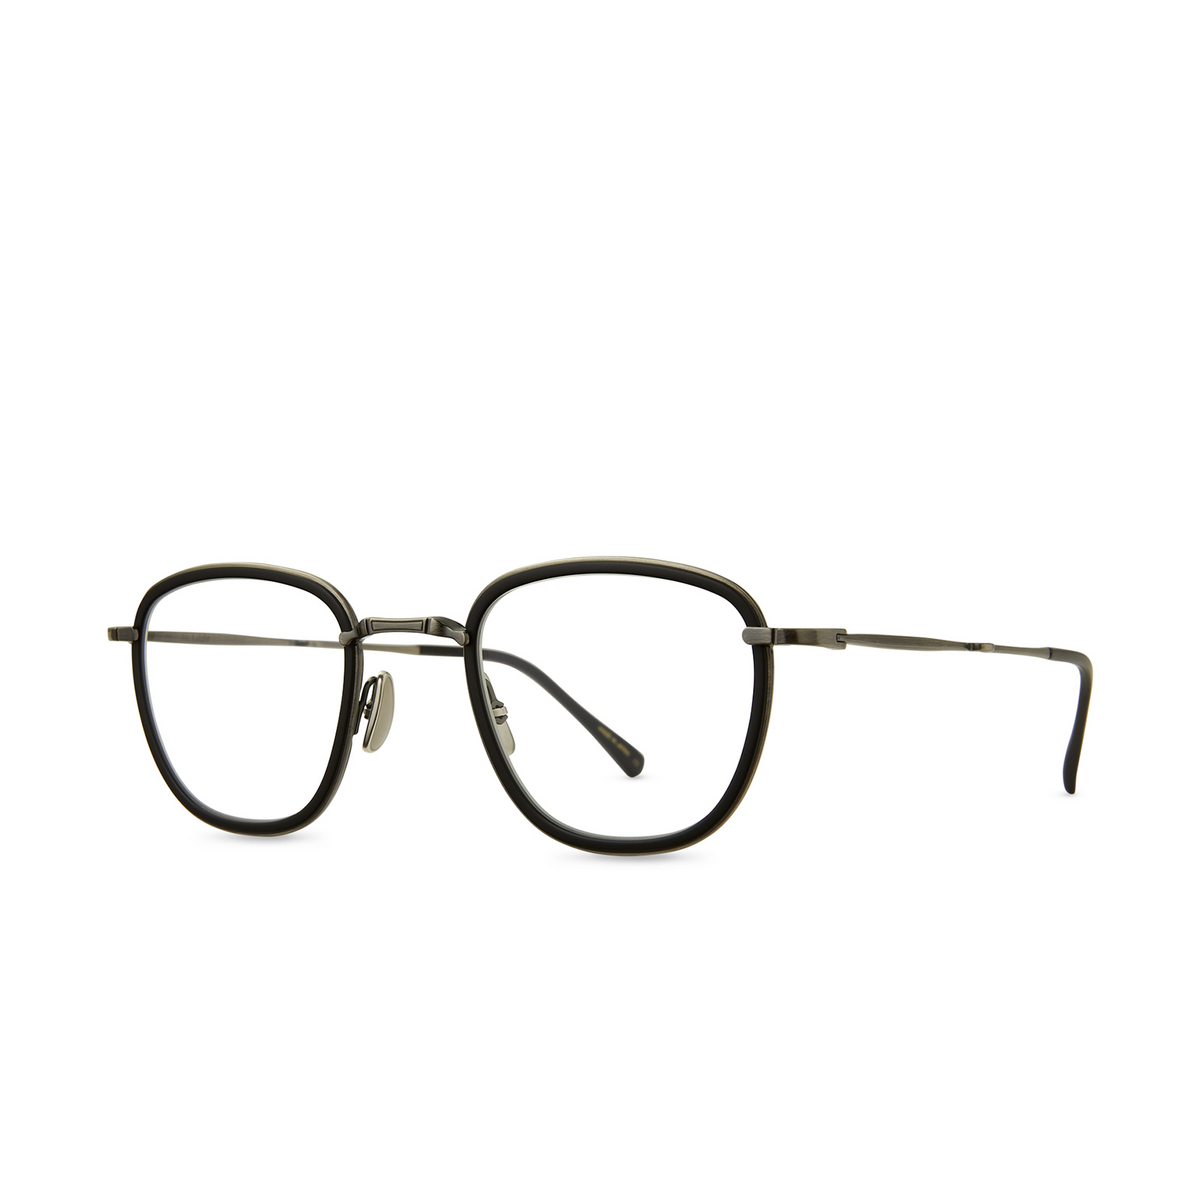 Mr. Leight® Square Eyeglasses: Griffith C color Mbk-pw-mbk - three-quarters view.